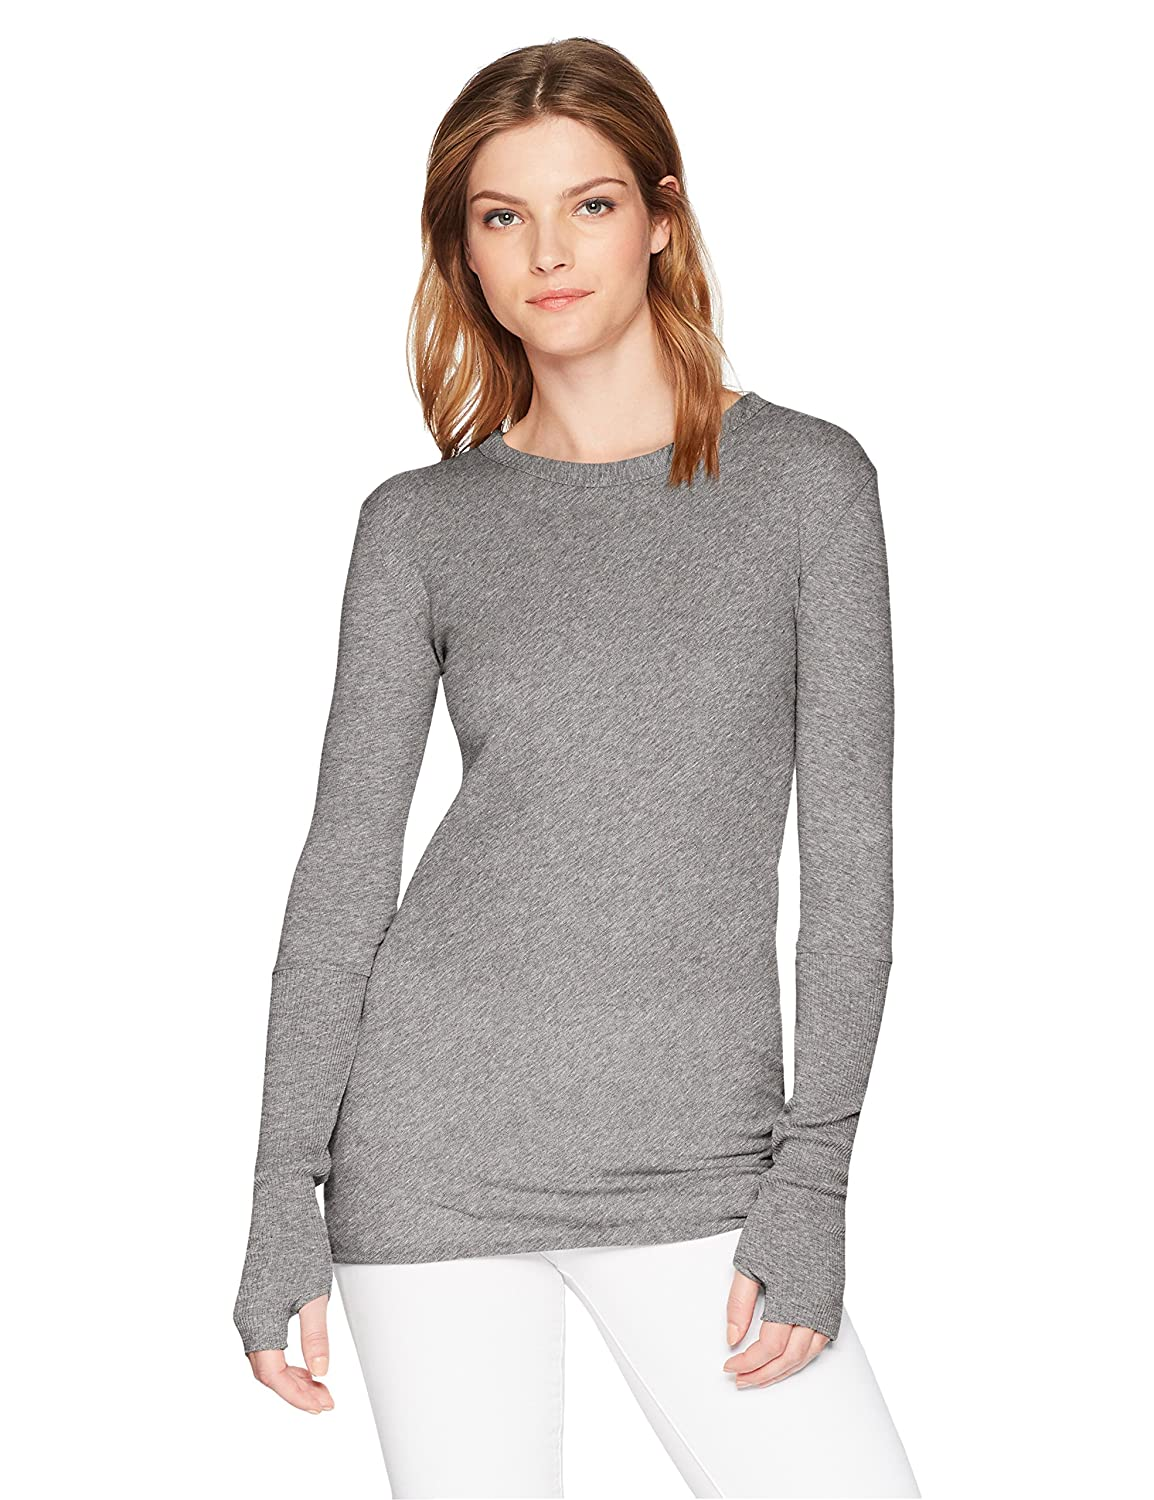 Enza Costa Women/'s Cashmere Long Sleeve Cuffed Crew Top with Thumbholes